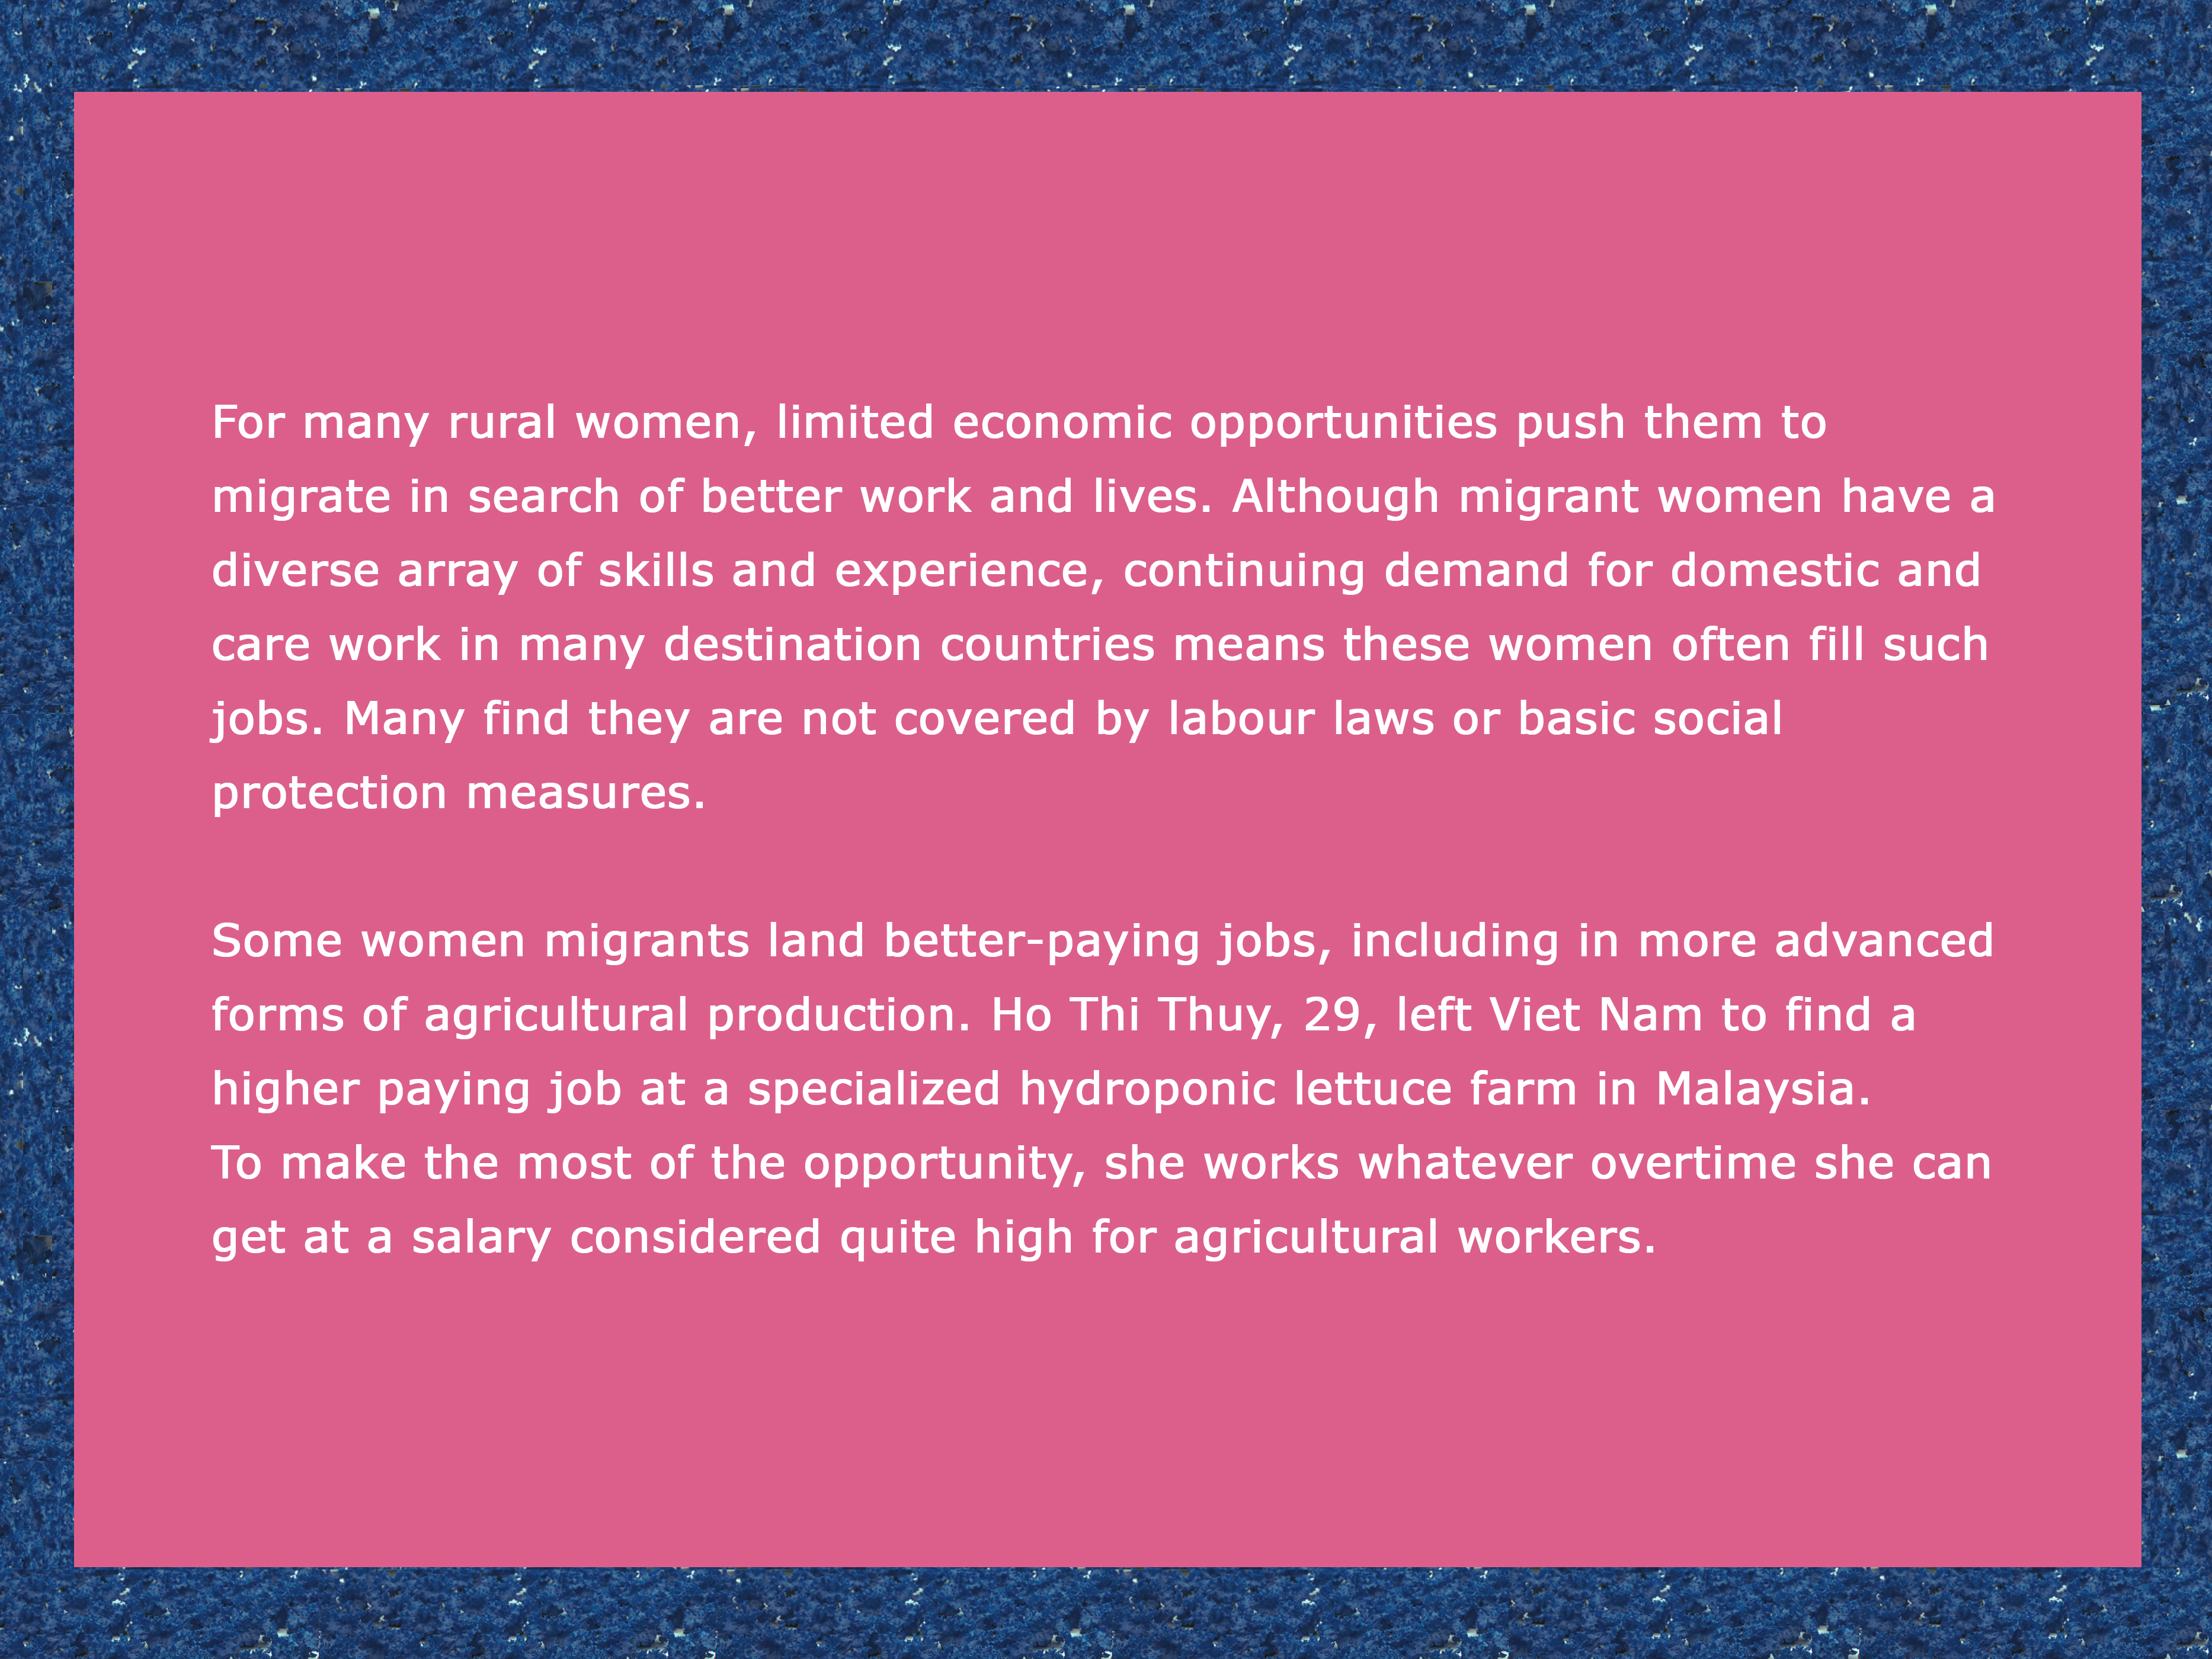 For many rural women, limited economic opportunities push them to  migrate in search of better work and lives.